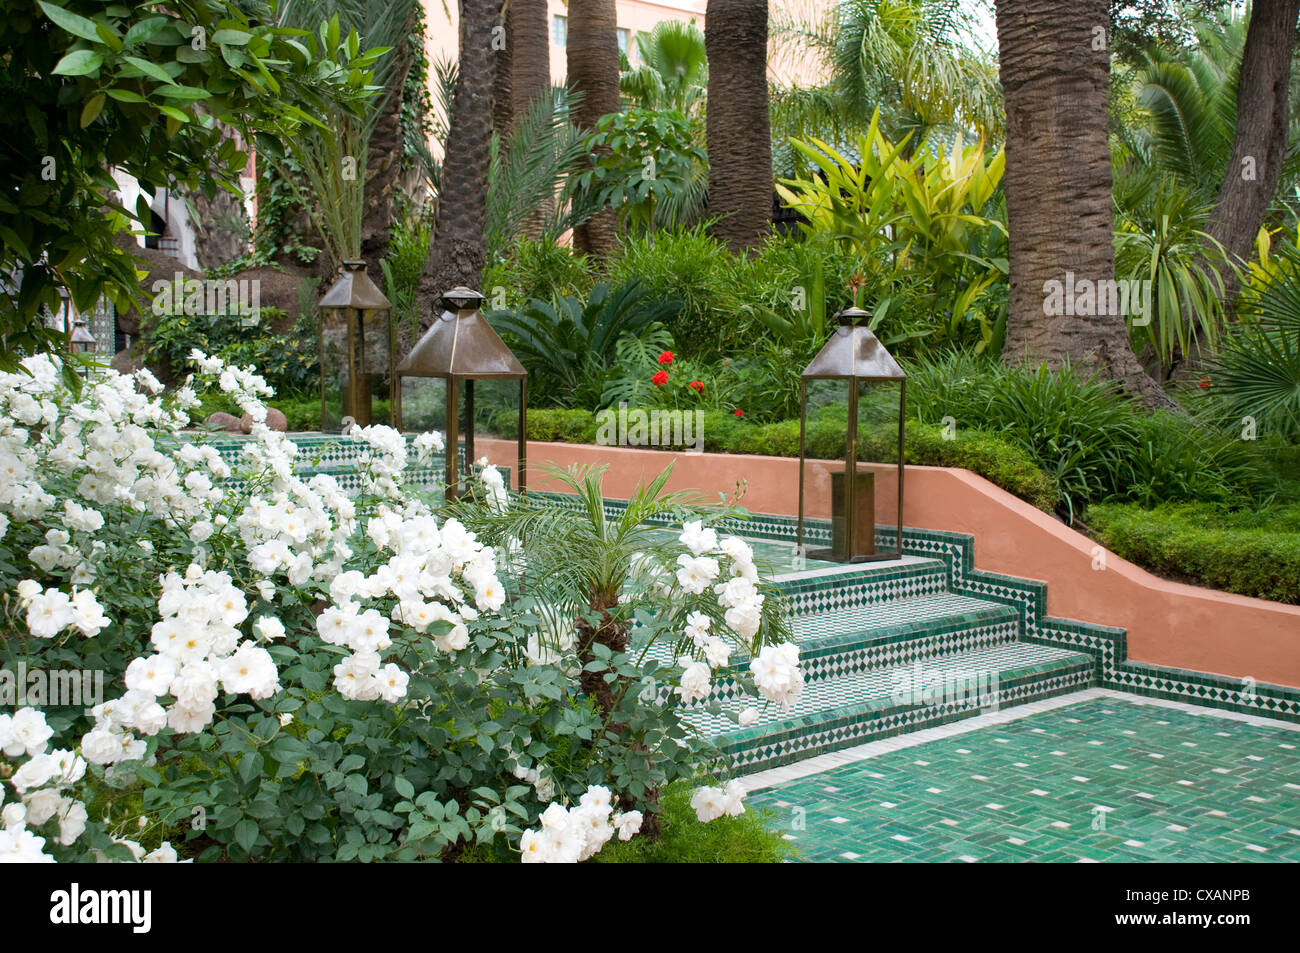 White roses and palm trees in the garden at la mamounia for Cafe le jardin marrakech